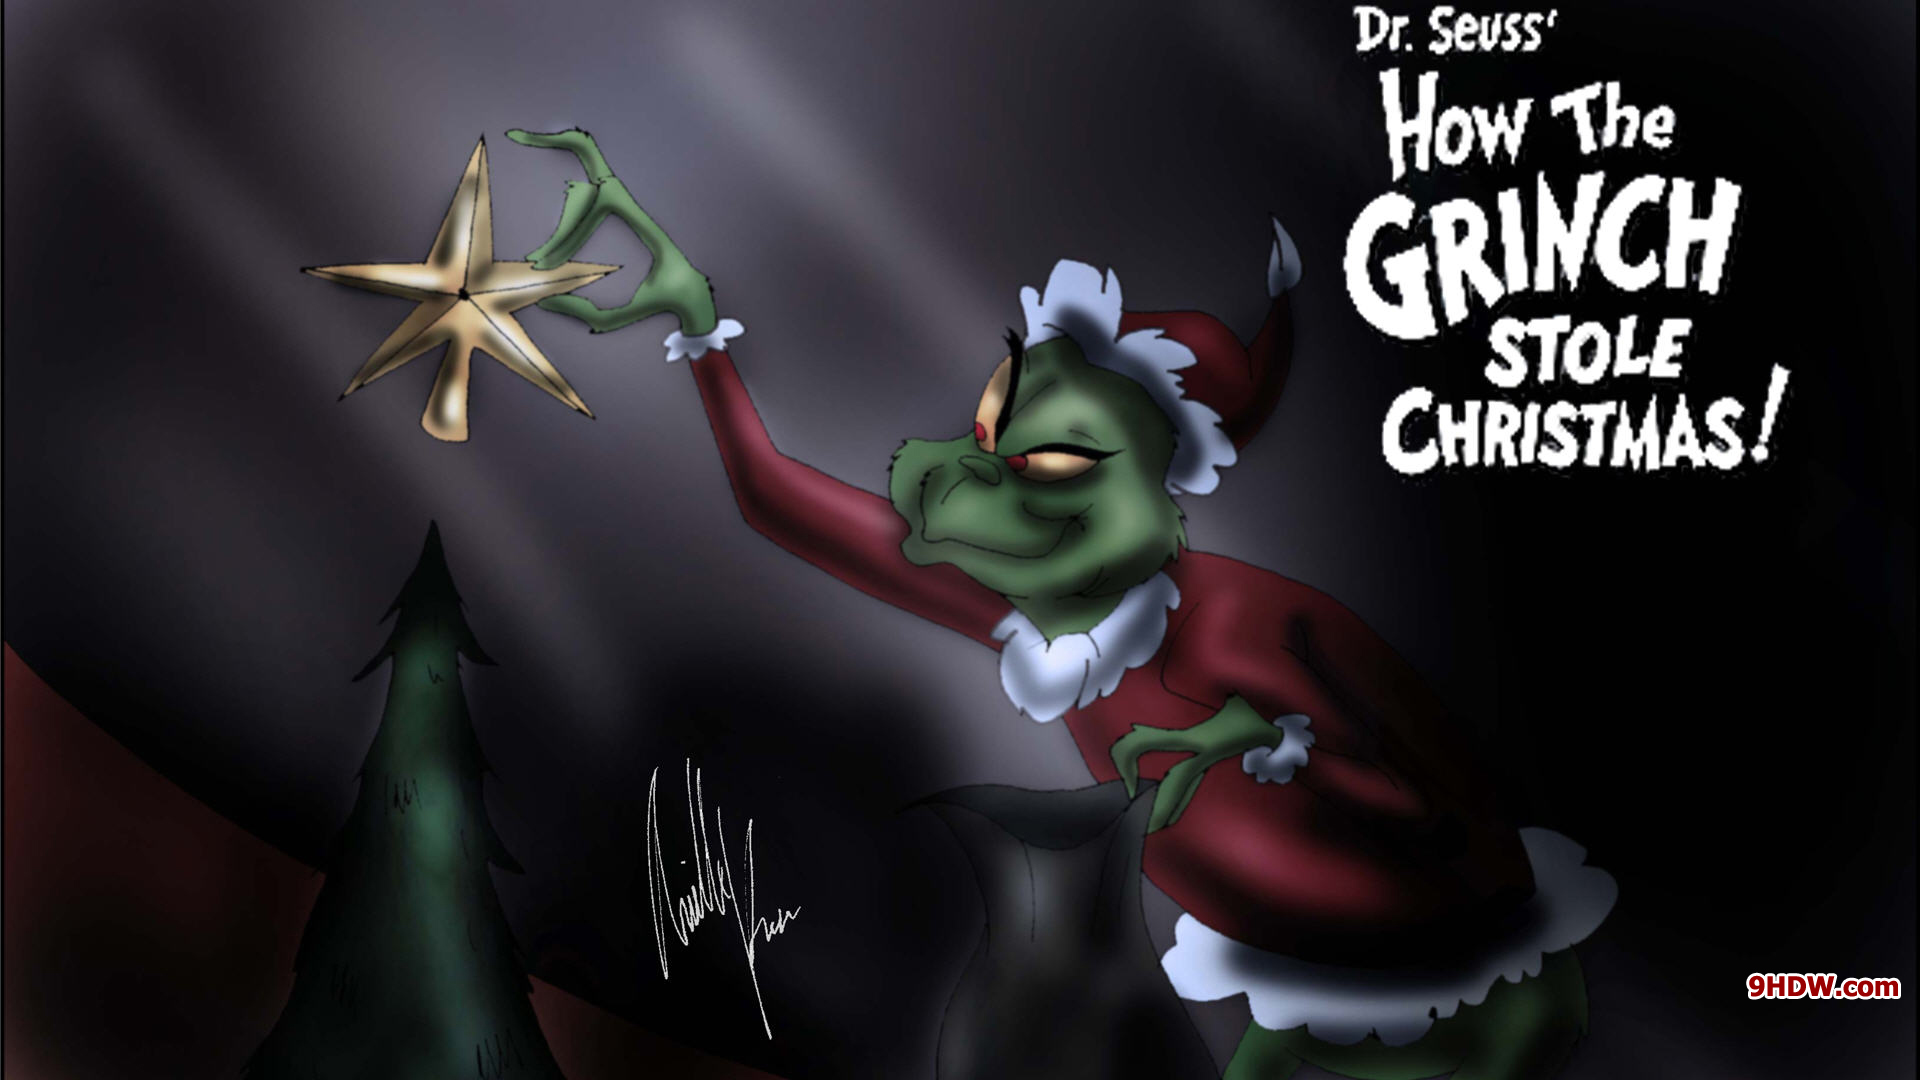 How The Grinch Stole Christmas Wallpaper HD 1920x1080 2112 1920x1080